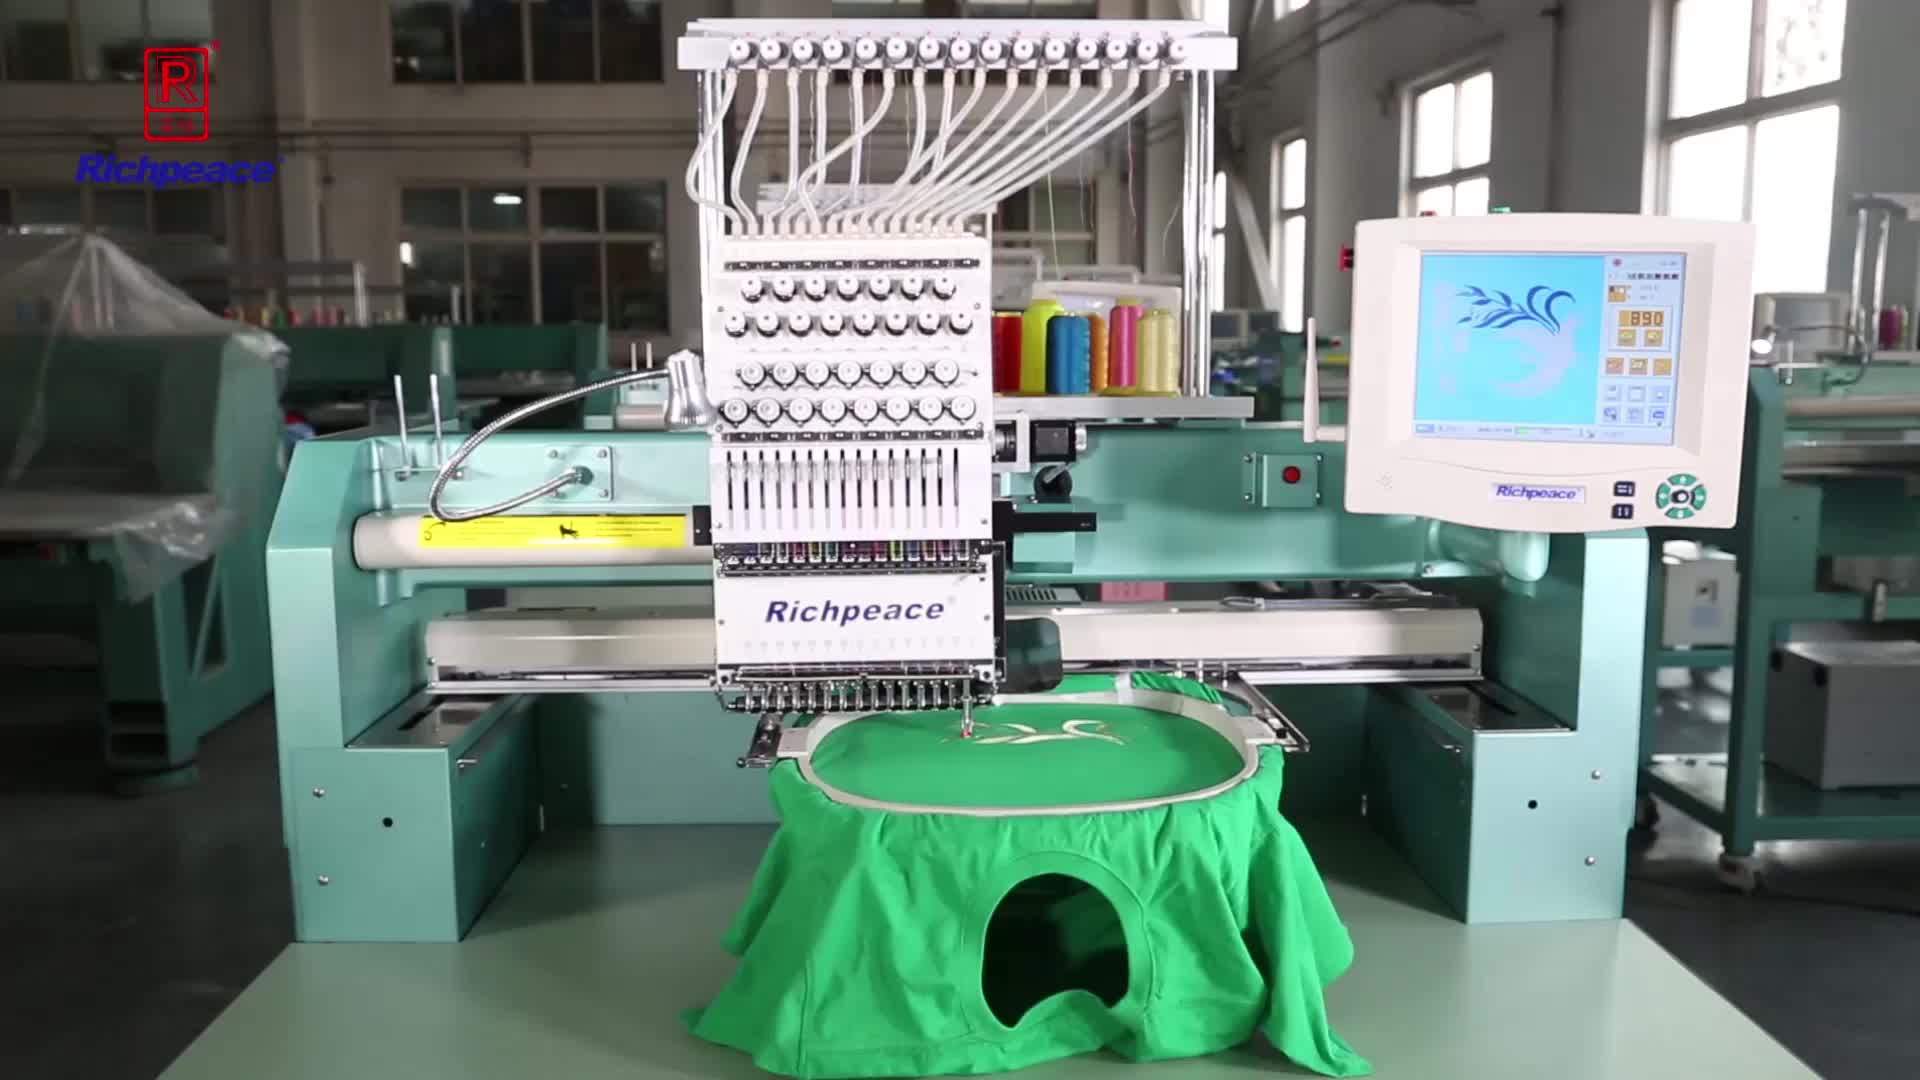 Computer Single Head Cap Embroidery Machine (Inventory machine)